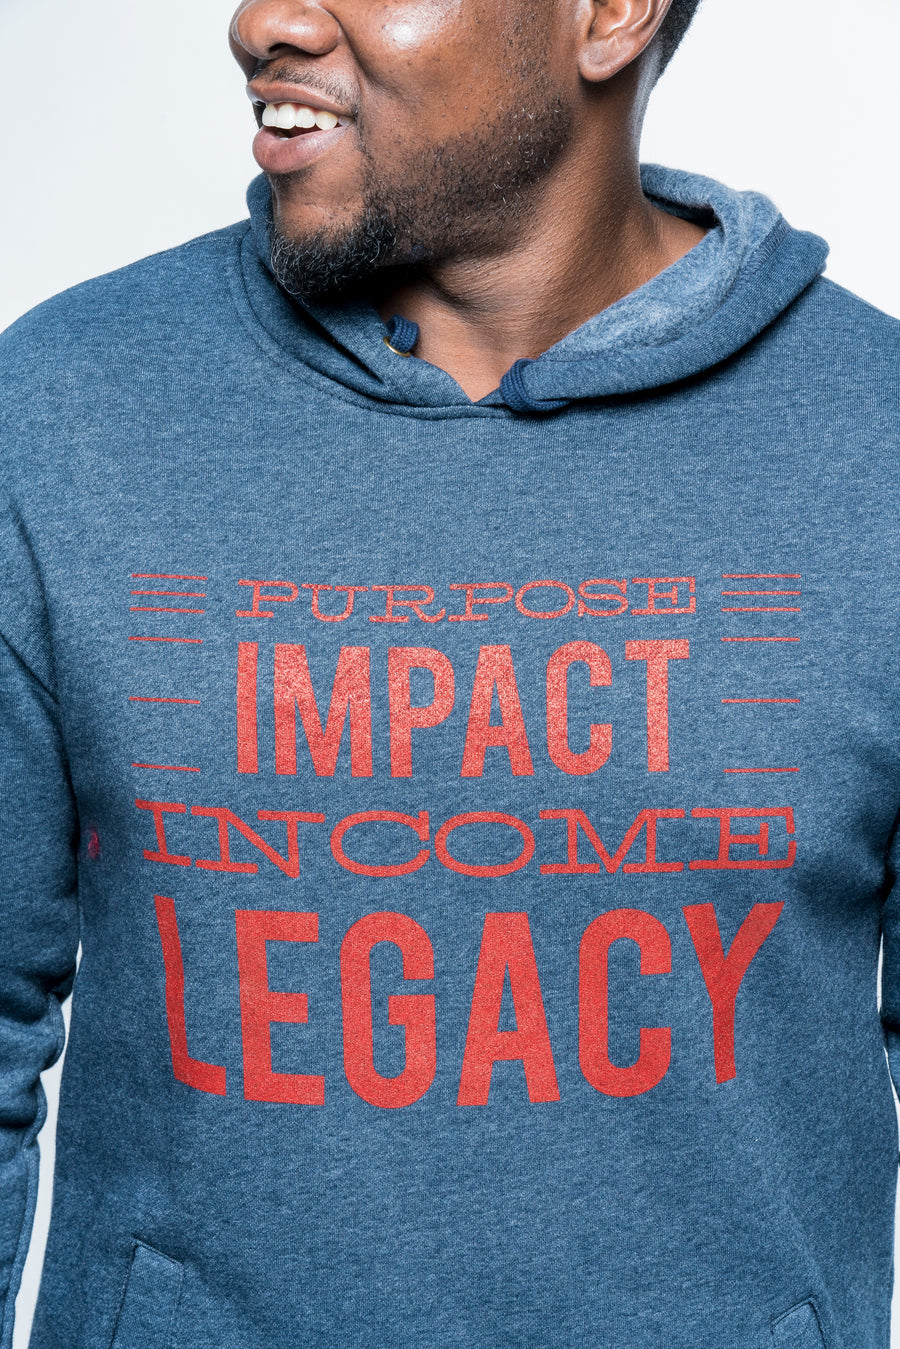 Purpose, Impact, Income, Legacy Hoodie